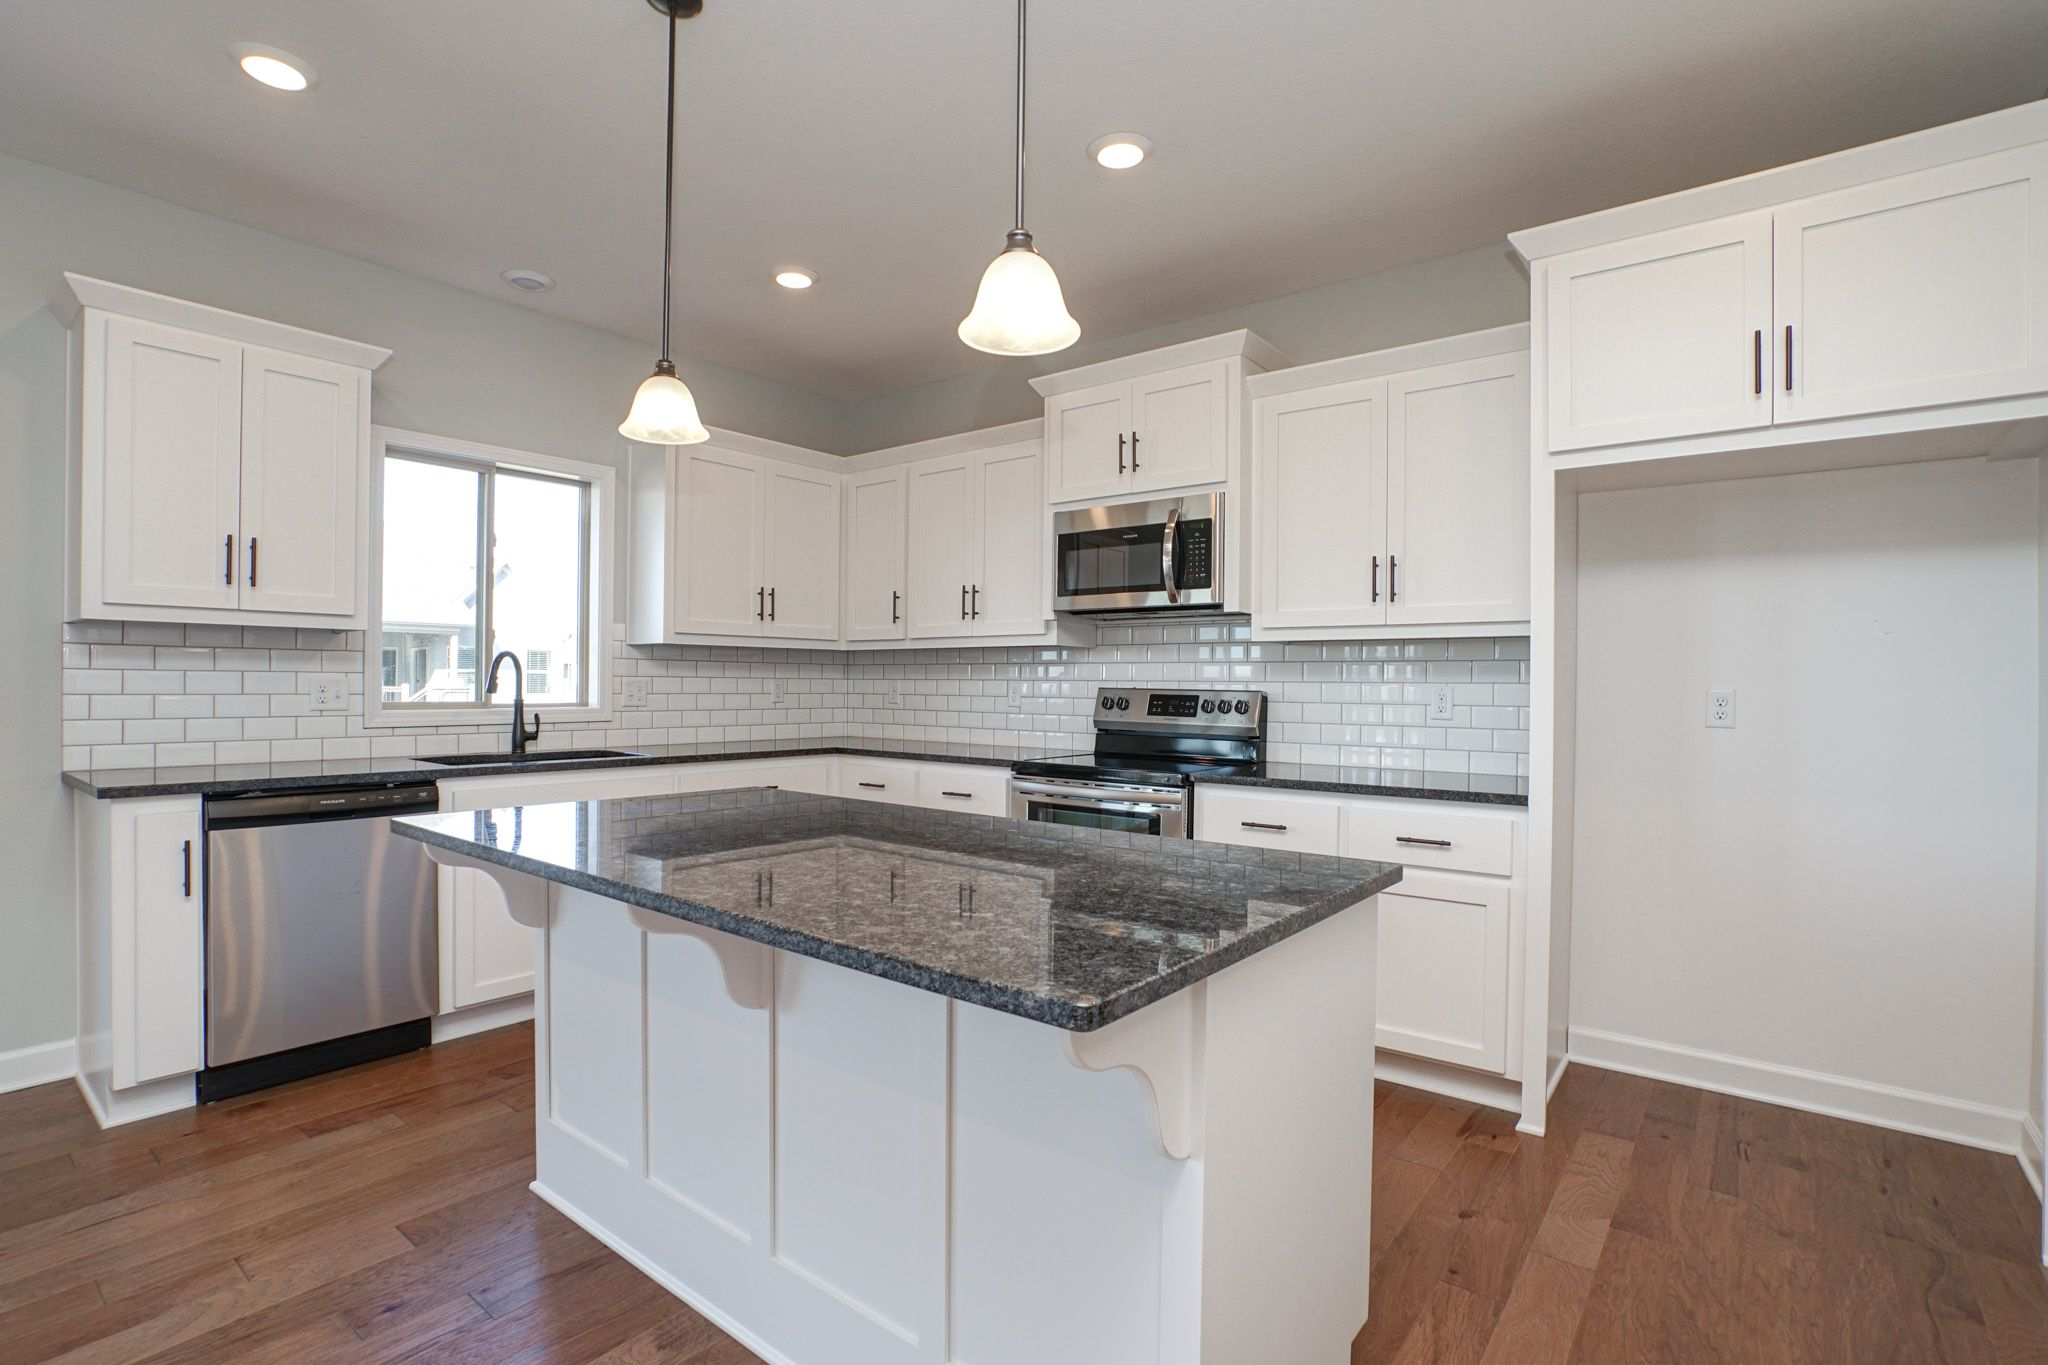 Kitchen featured in the Winfield - IA By Summit Homes in Des Moines, IA